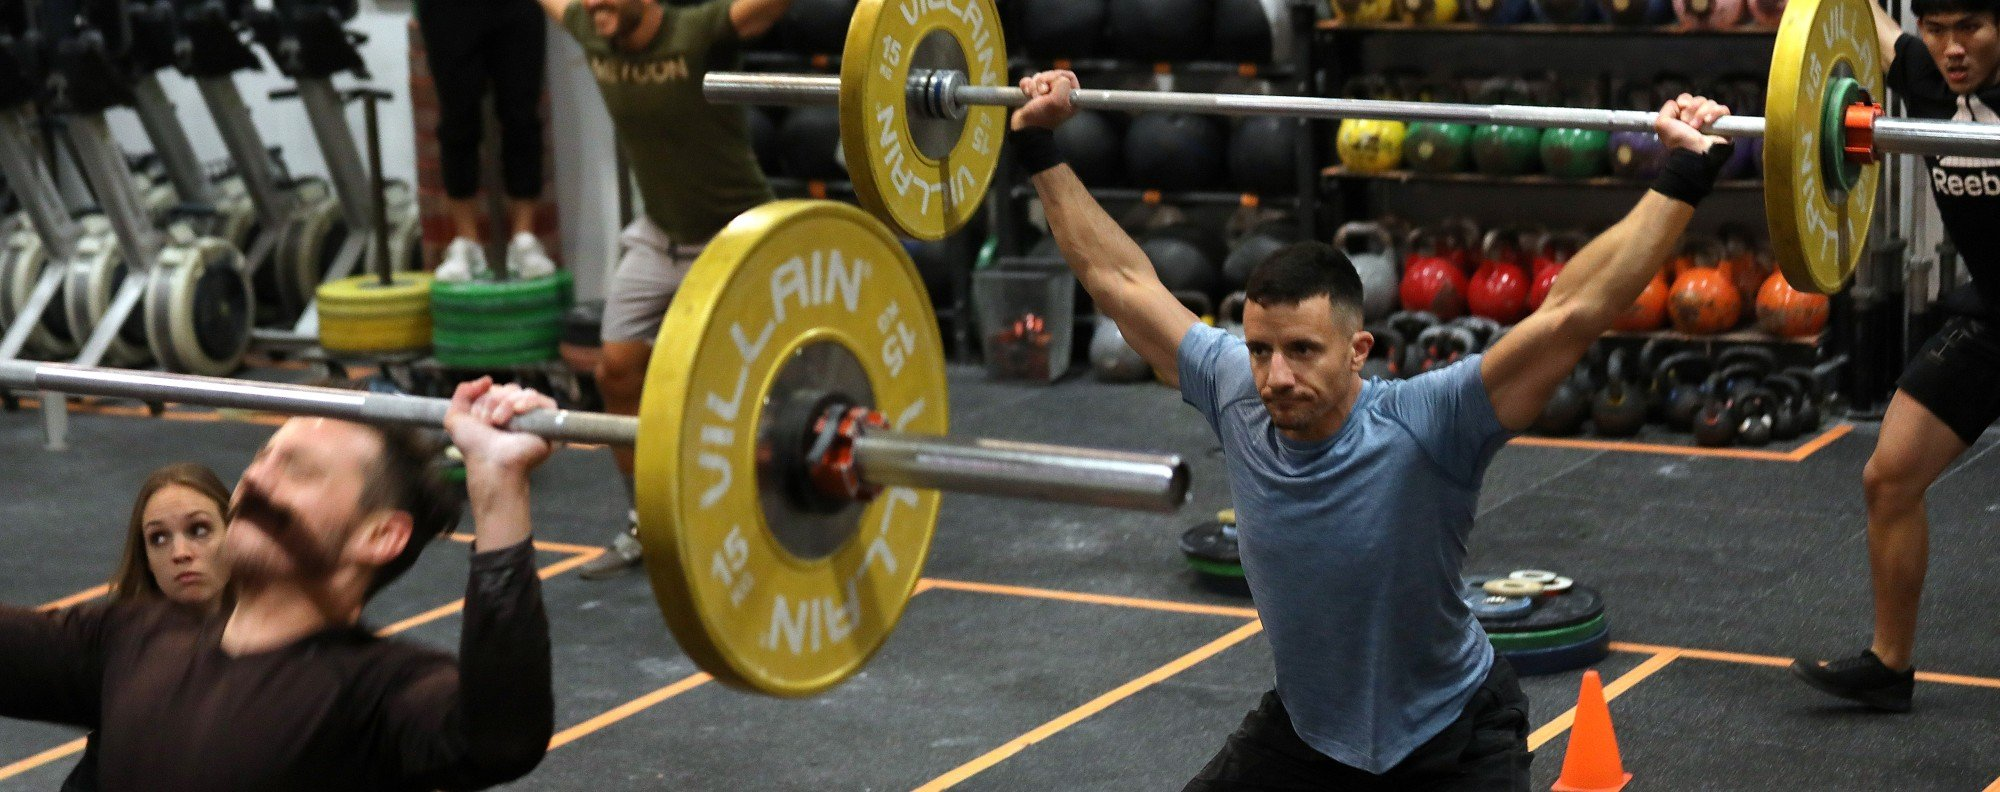 CrossFit gyms are struggling during coronavirus. Photo: Xiaomei Chen